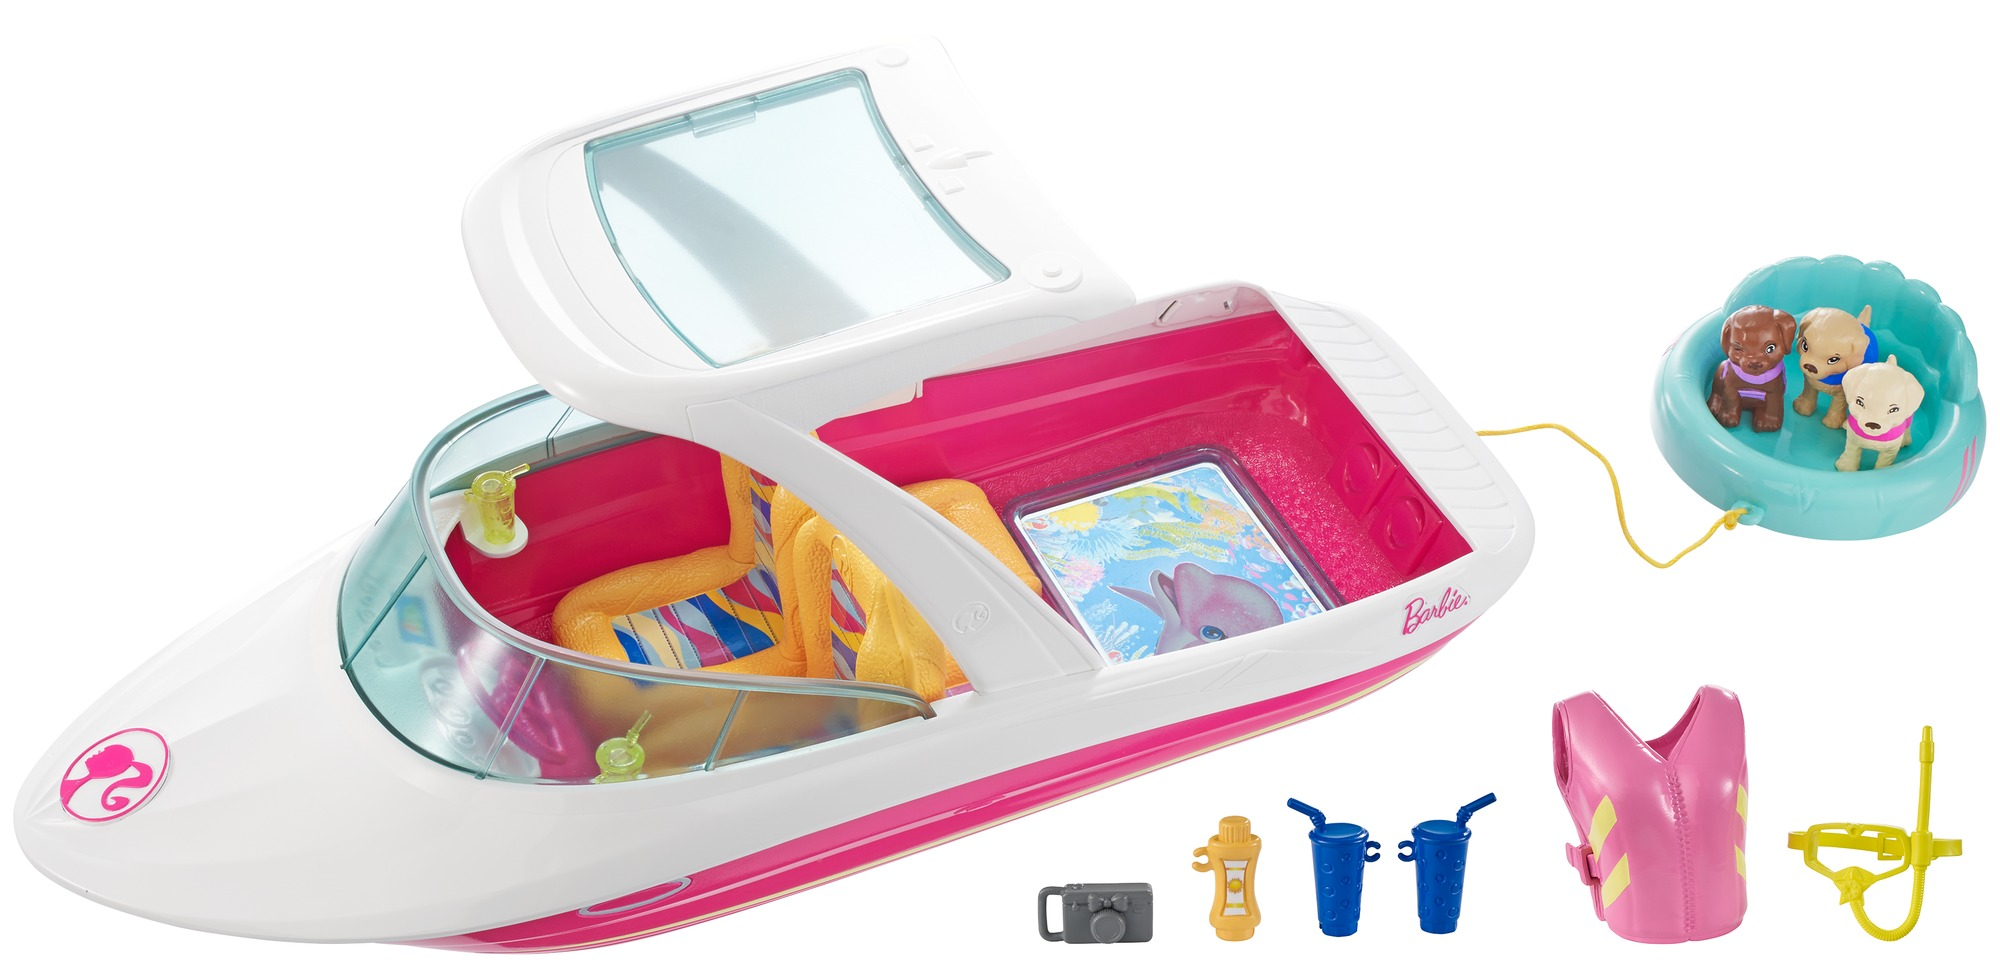 Barbie Dolphin Magic Ocean View Boat Playset by Mattel